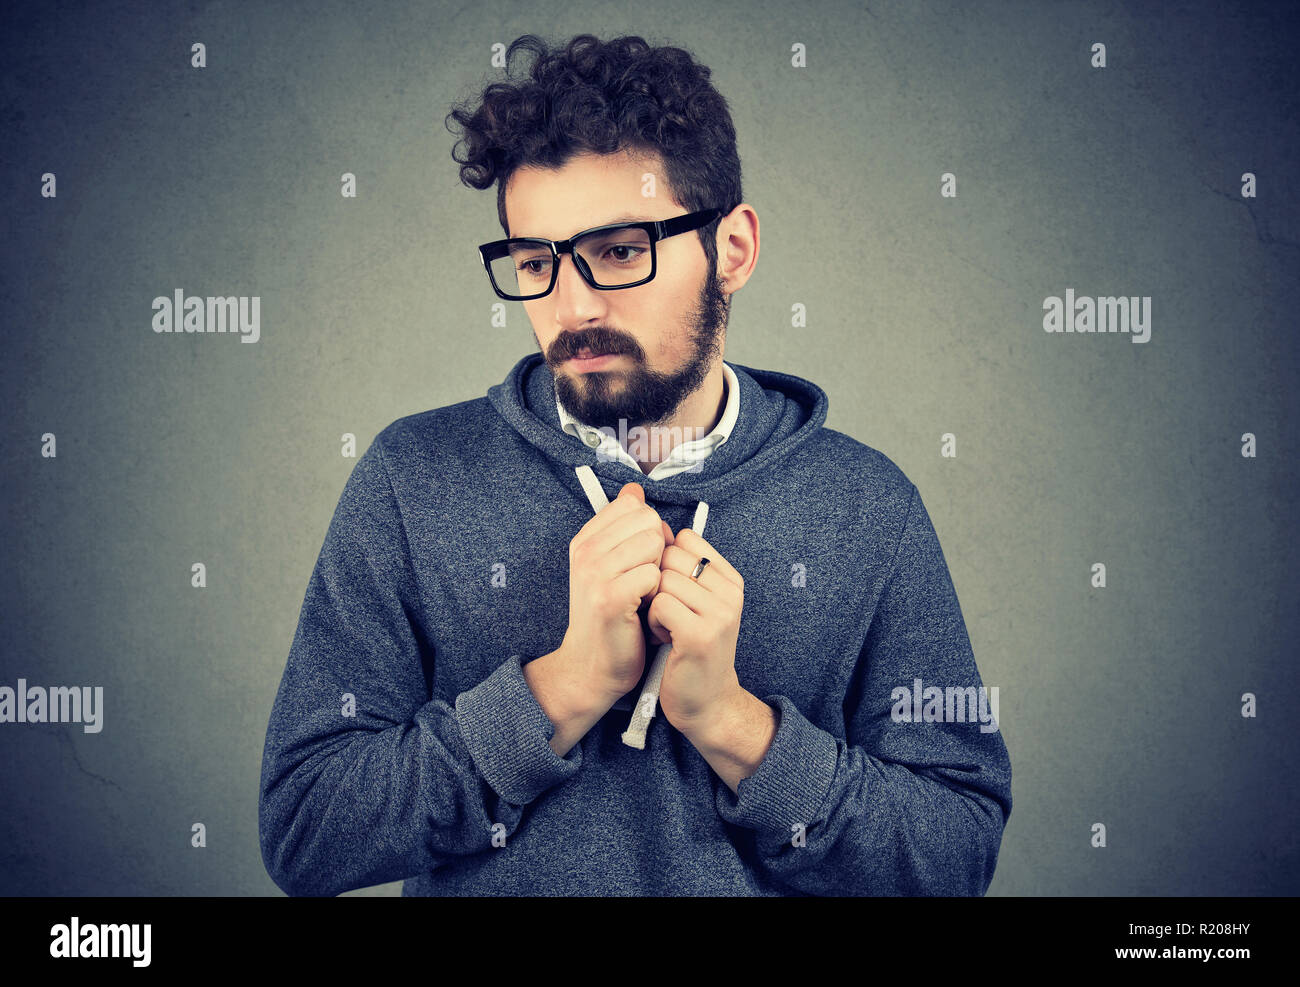 Young bearded man pointing feeling shy and guilty in awkward situation - Stock Image